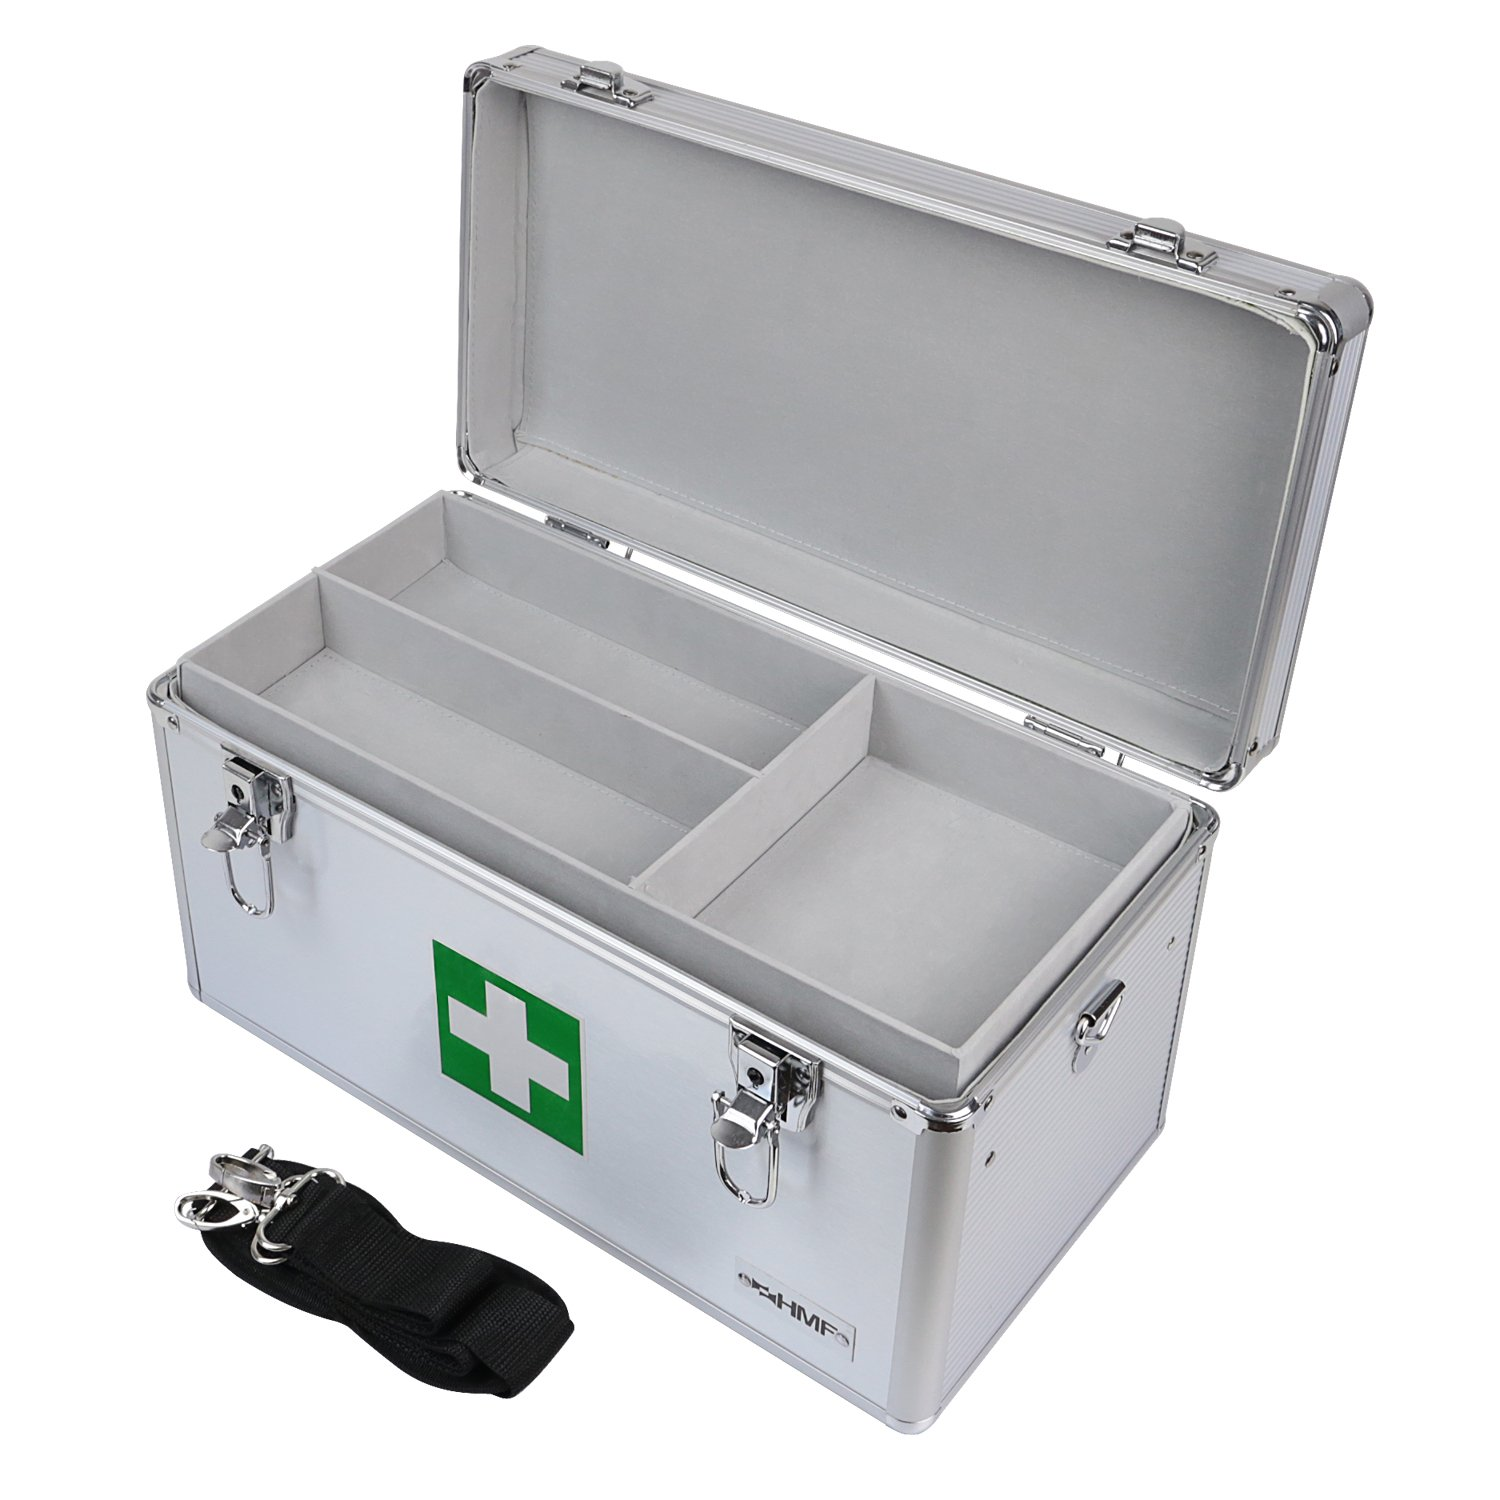 HMF 14701-09 First Aid Box, Medical Box, Carrying Handle, Carry Strap, Aluminium, 40 x 22,5 x 20,5 cm